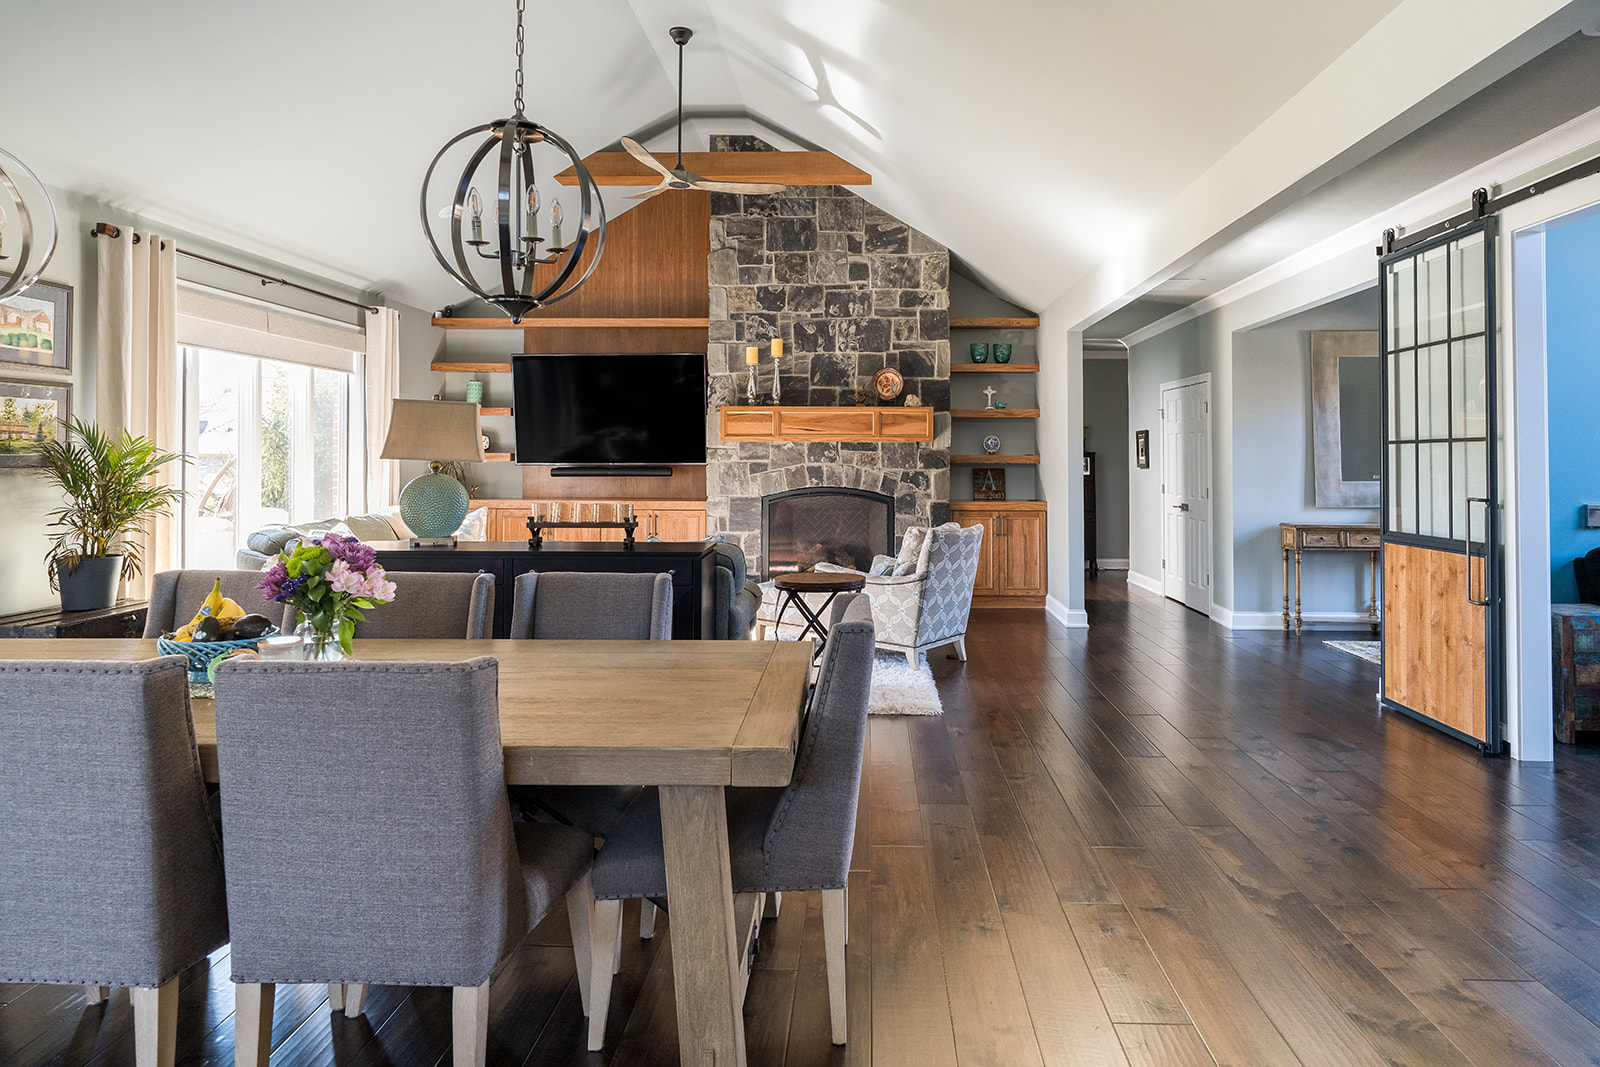 Planning a Remodel That Stands the Test of Time